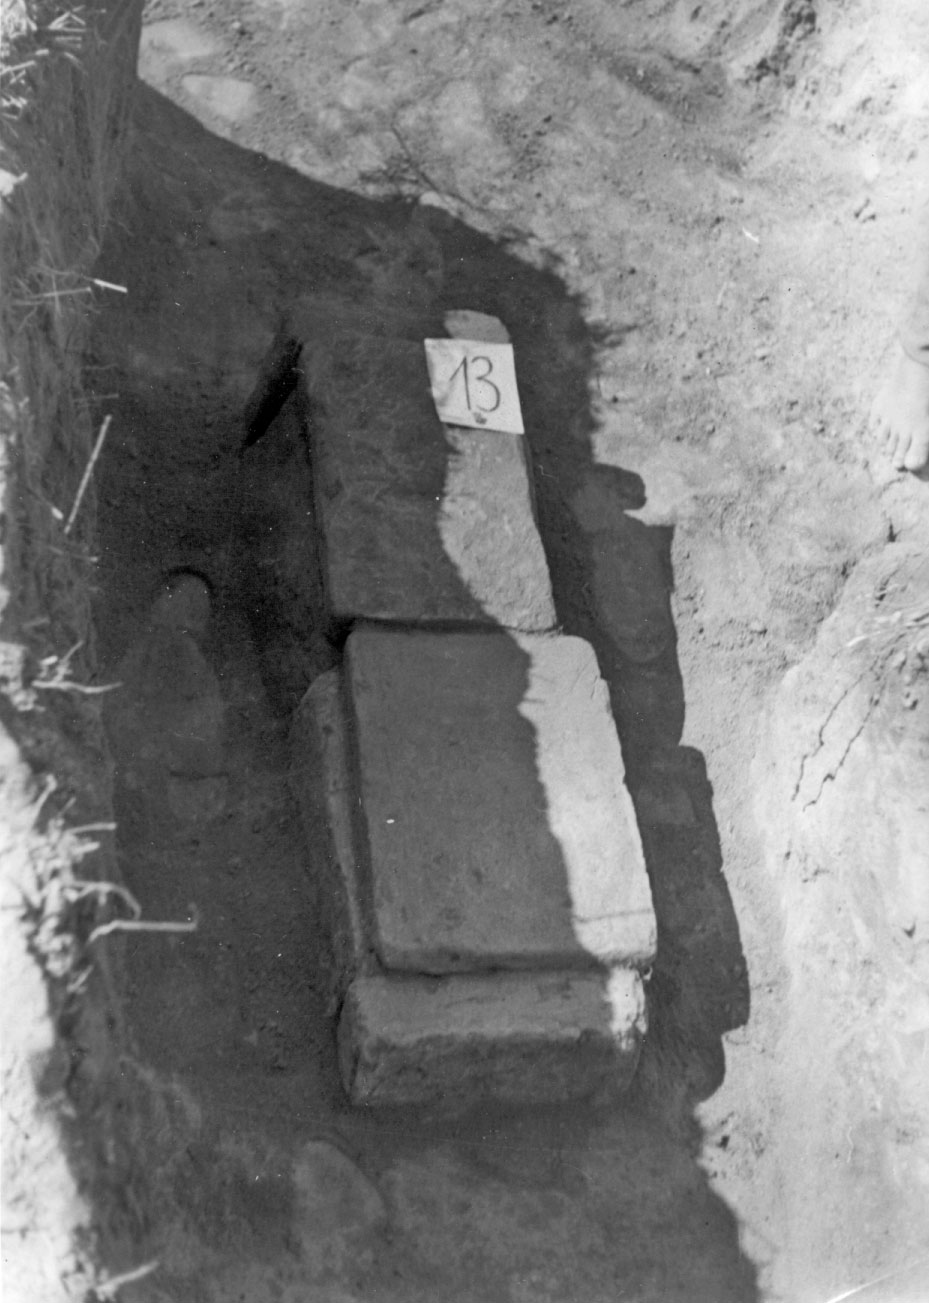 Graveb 13. Late Roman grave with a buried deceased. Grave cut inlaid with large dimension bricks without mortar.